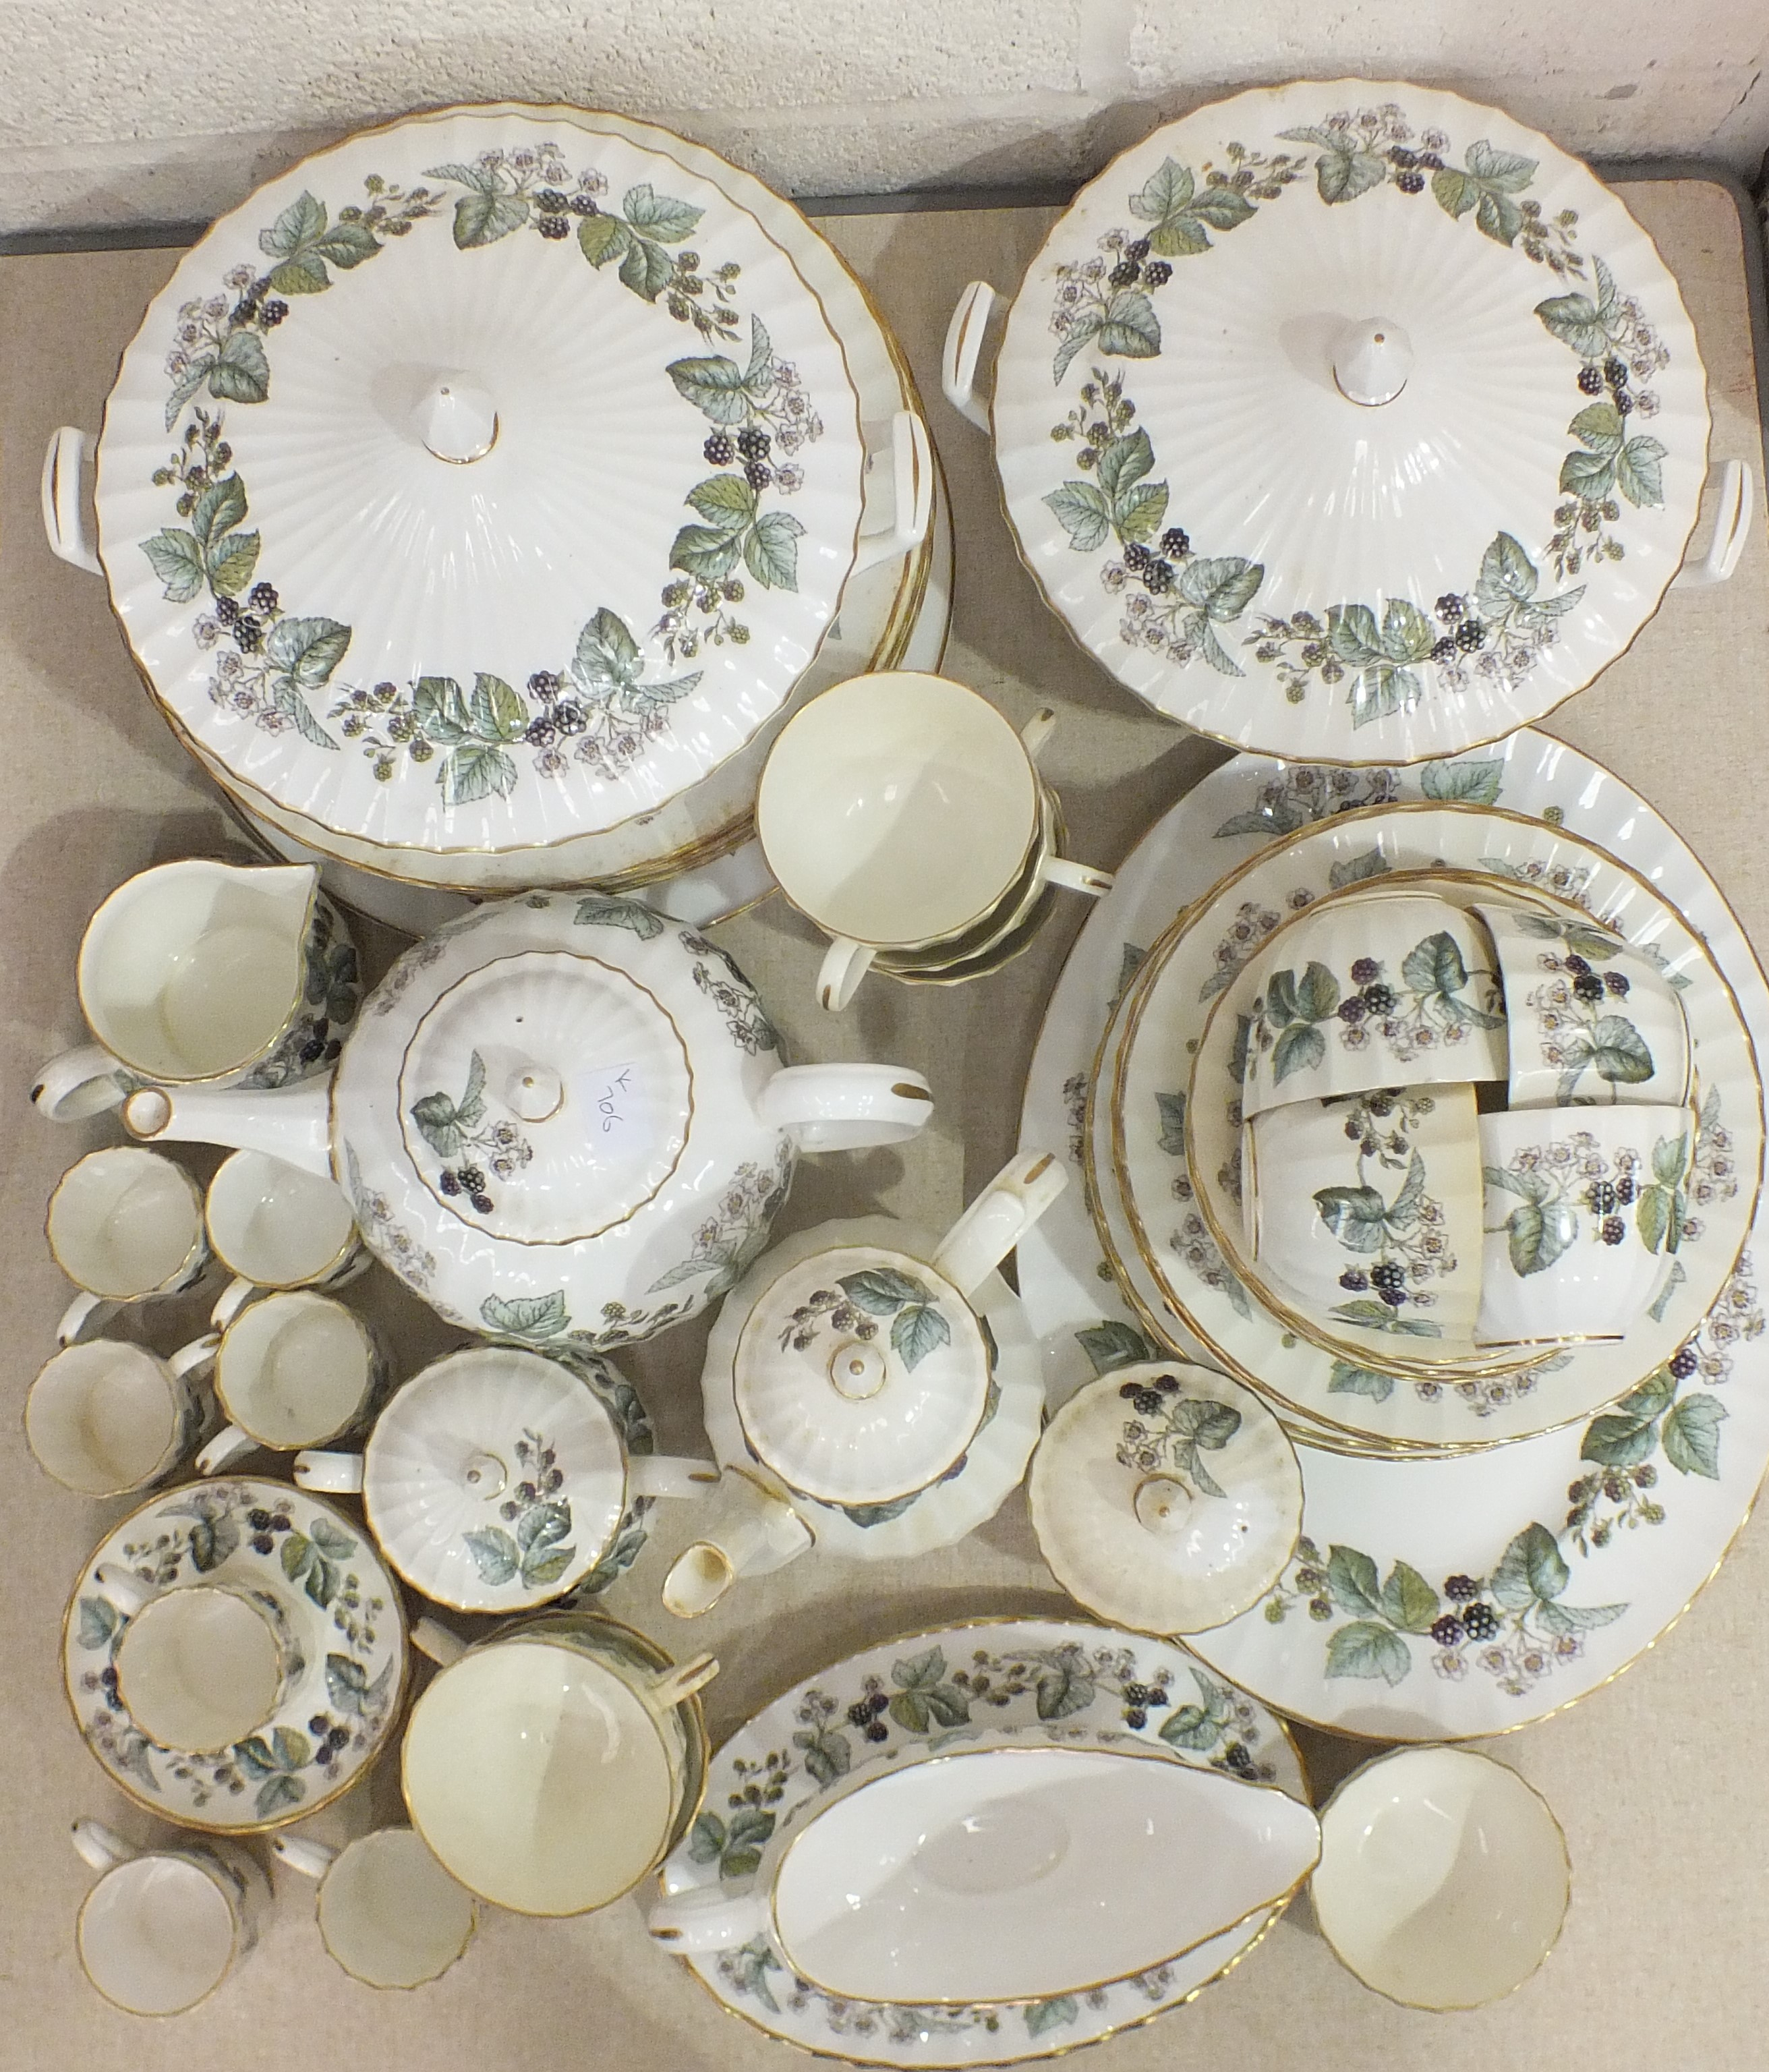 Lot 60 - A collection of Royal Worcester bone china dinner and tea ware in the 'Lavinia' pattern,